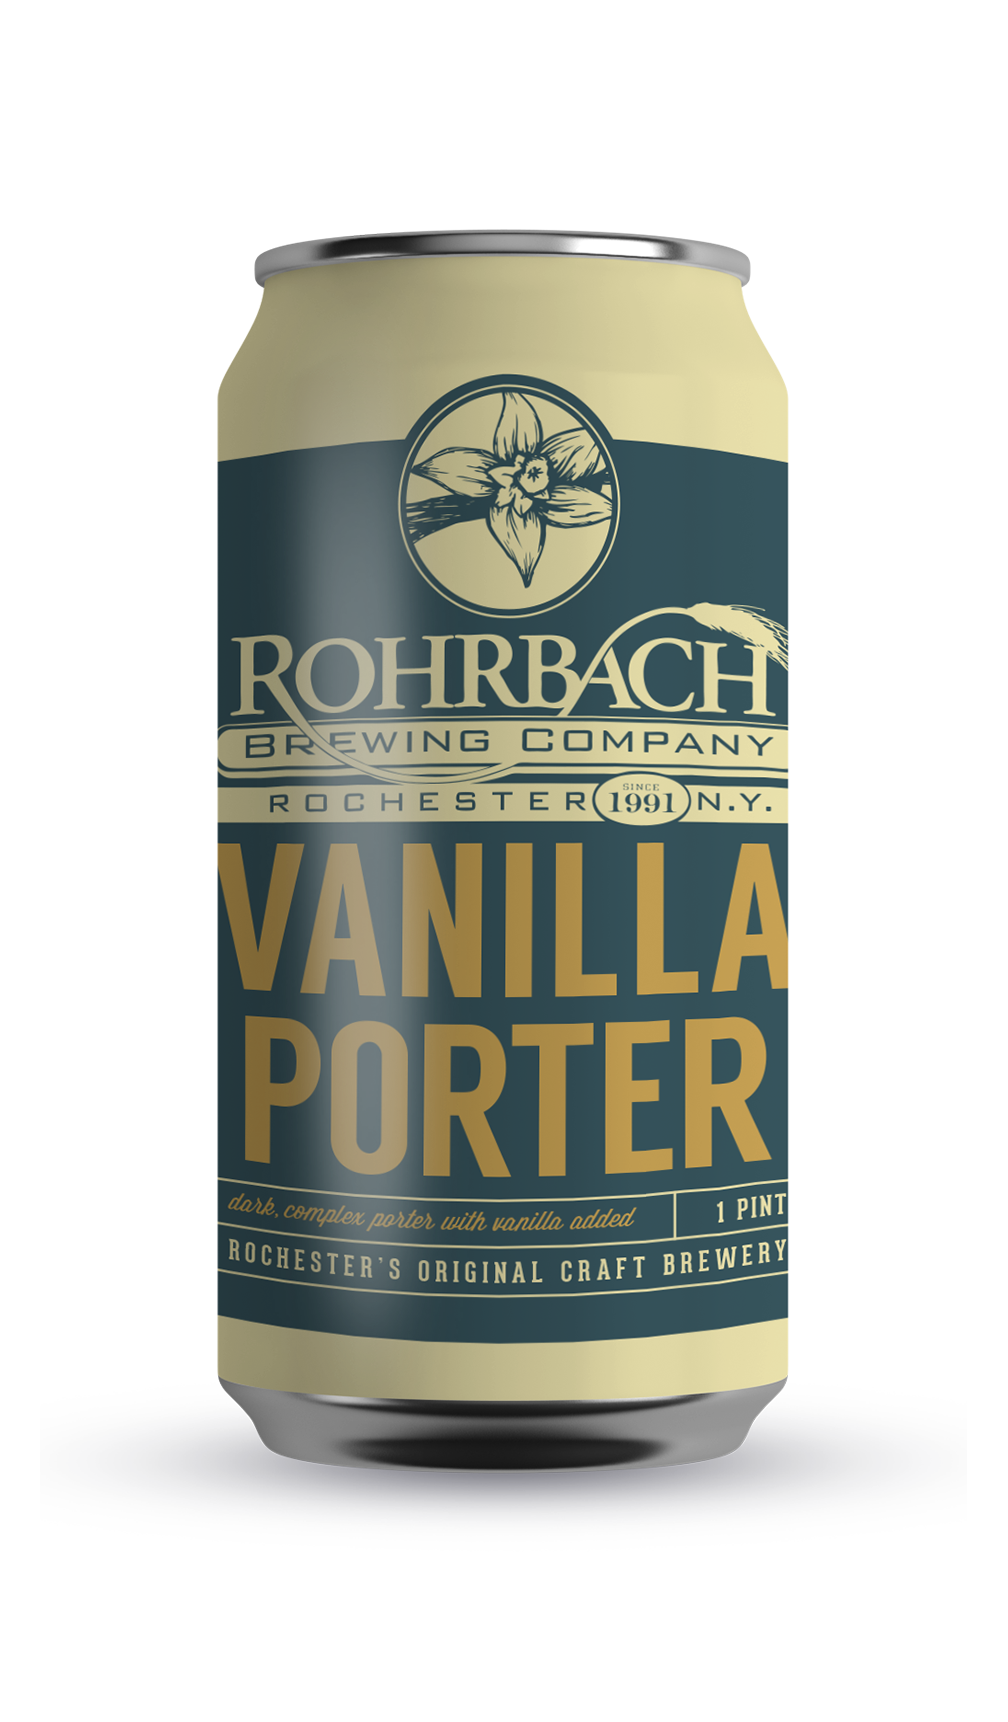 VANILLA PORTER  A rich, complex English-style porter brewed with a variety of malt: chocolate, caramel, black, and roasted barley. Authentic vanilla is added after fermentation which gives the beer yet another layer of complexity.  ABV 5.9% | IBU 23 | SRM 36